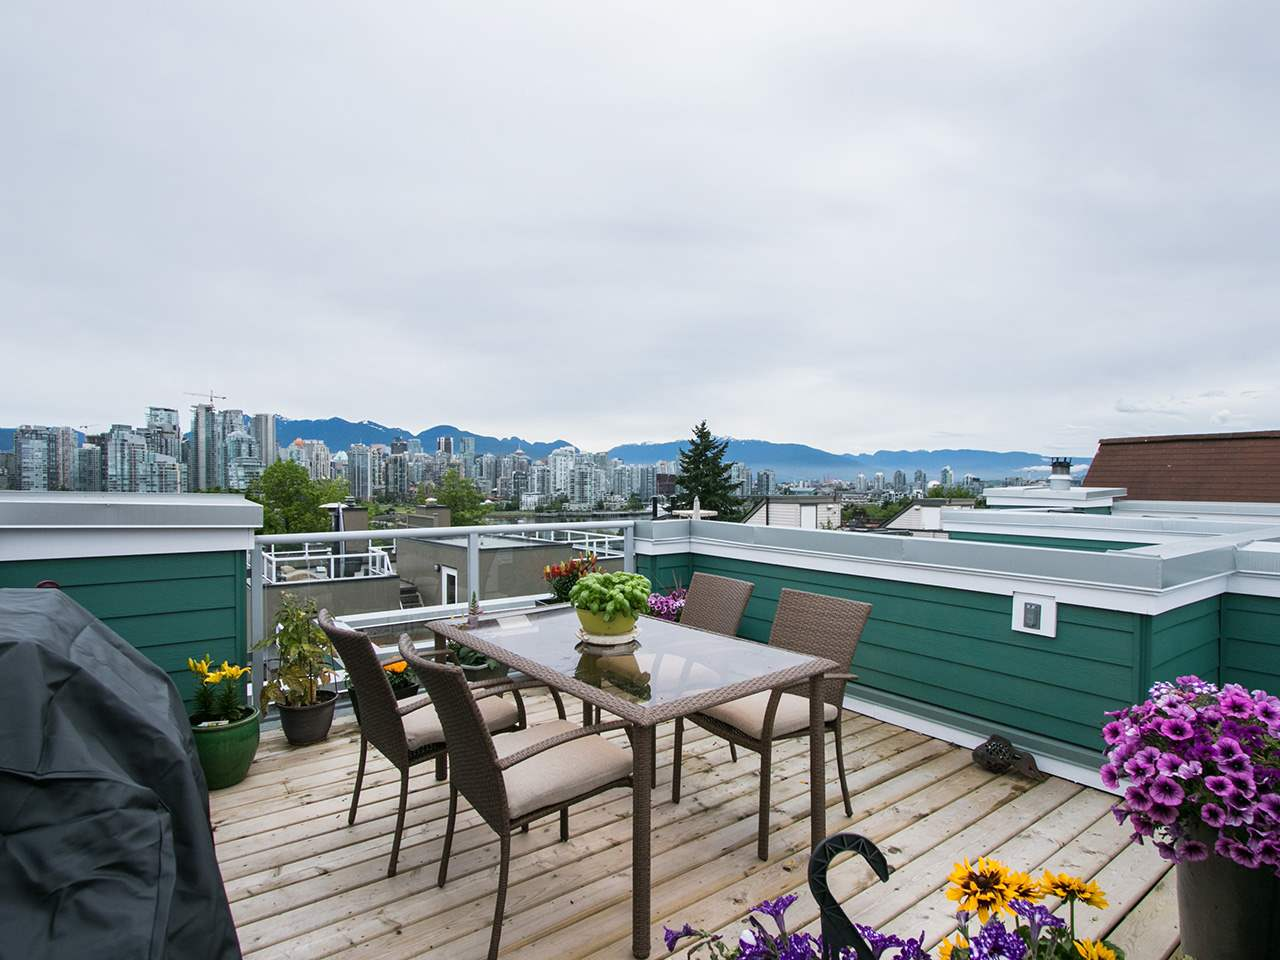 Main Photo: 7 1065 W 8TH Avenue in Vancouver: Fairview VW Townhouse for sale (Vancouver West)  : MLS(r) # R2179350